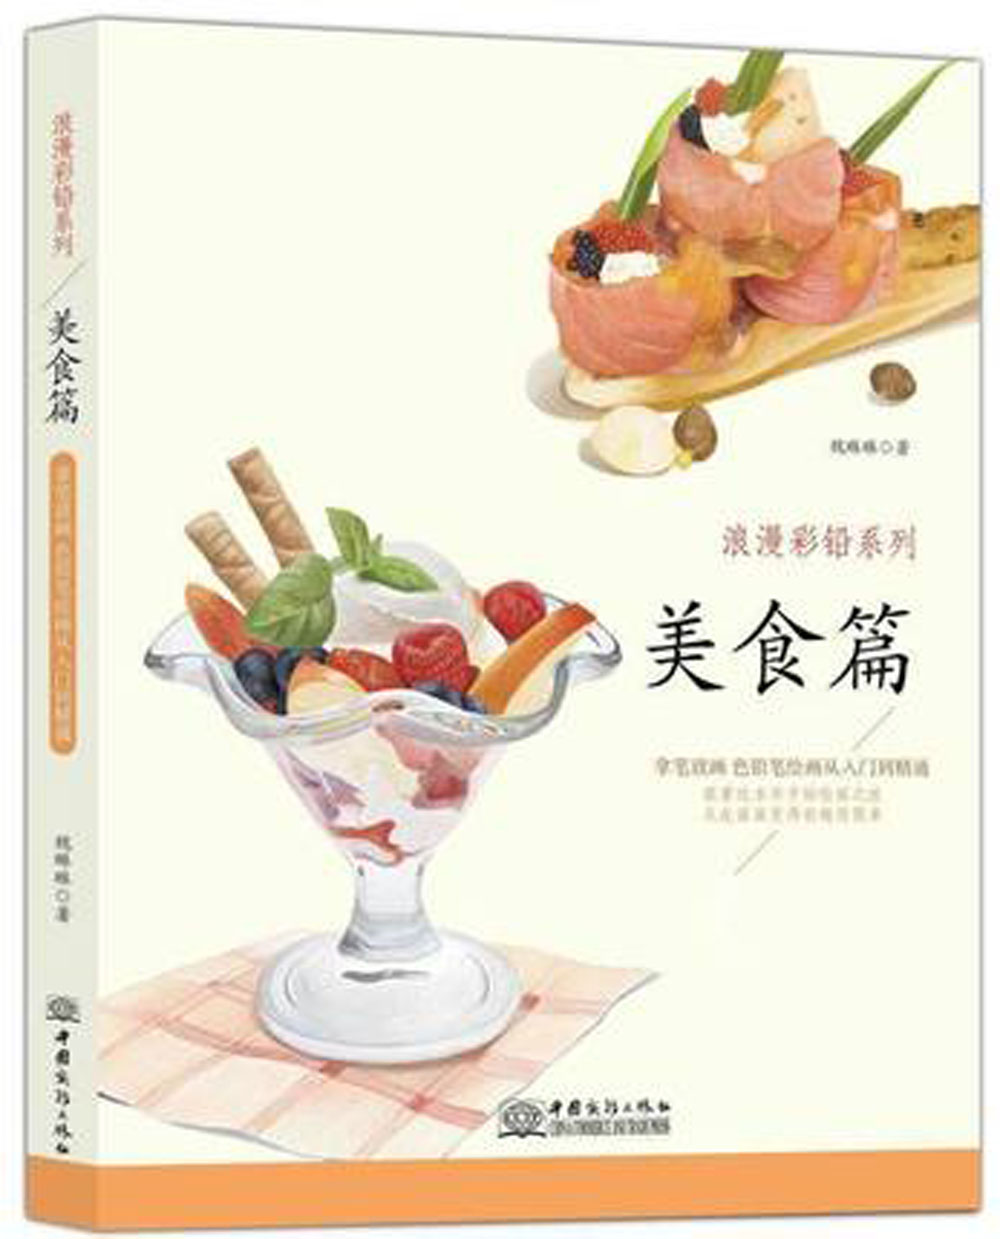 Delicious food Color Pencil Drawing book chinese art techniques Painting Book textbook chinese pencil drawing book cute animals color pencil painting textbook tutorial art book